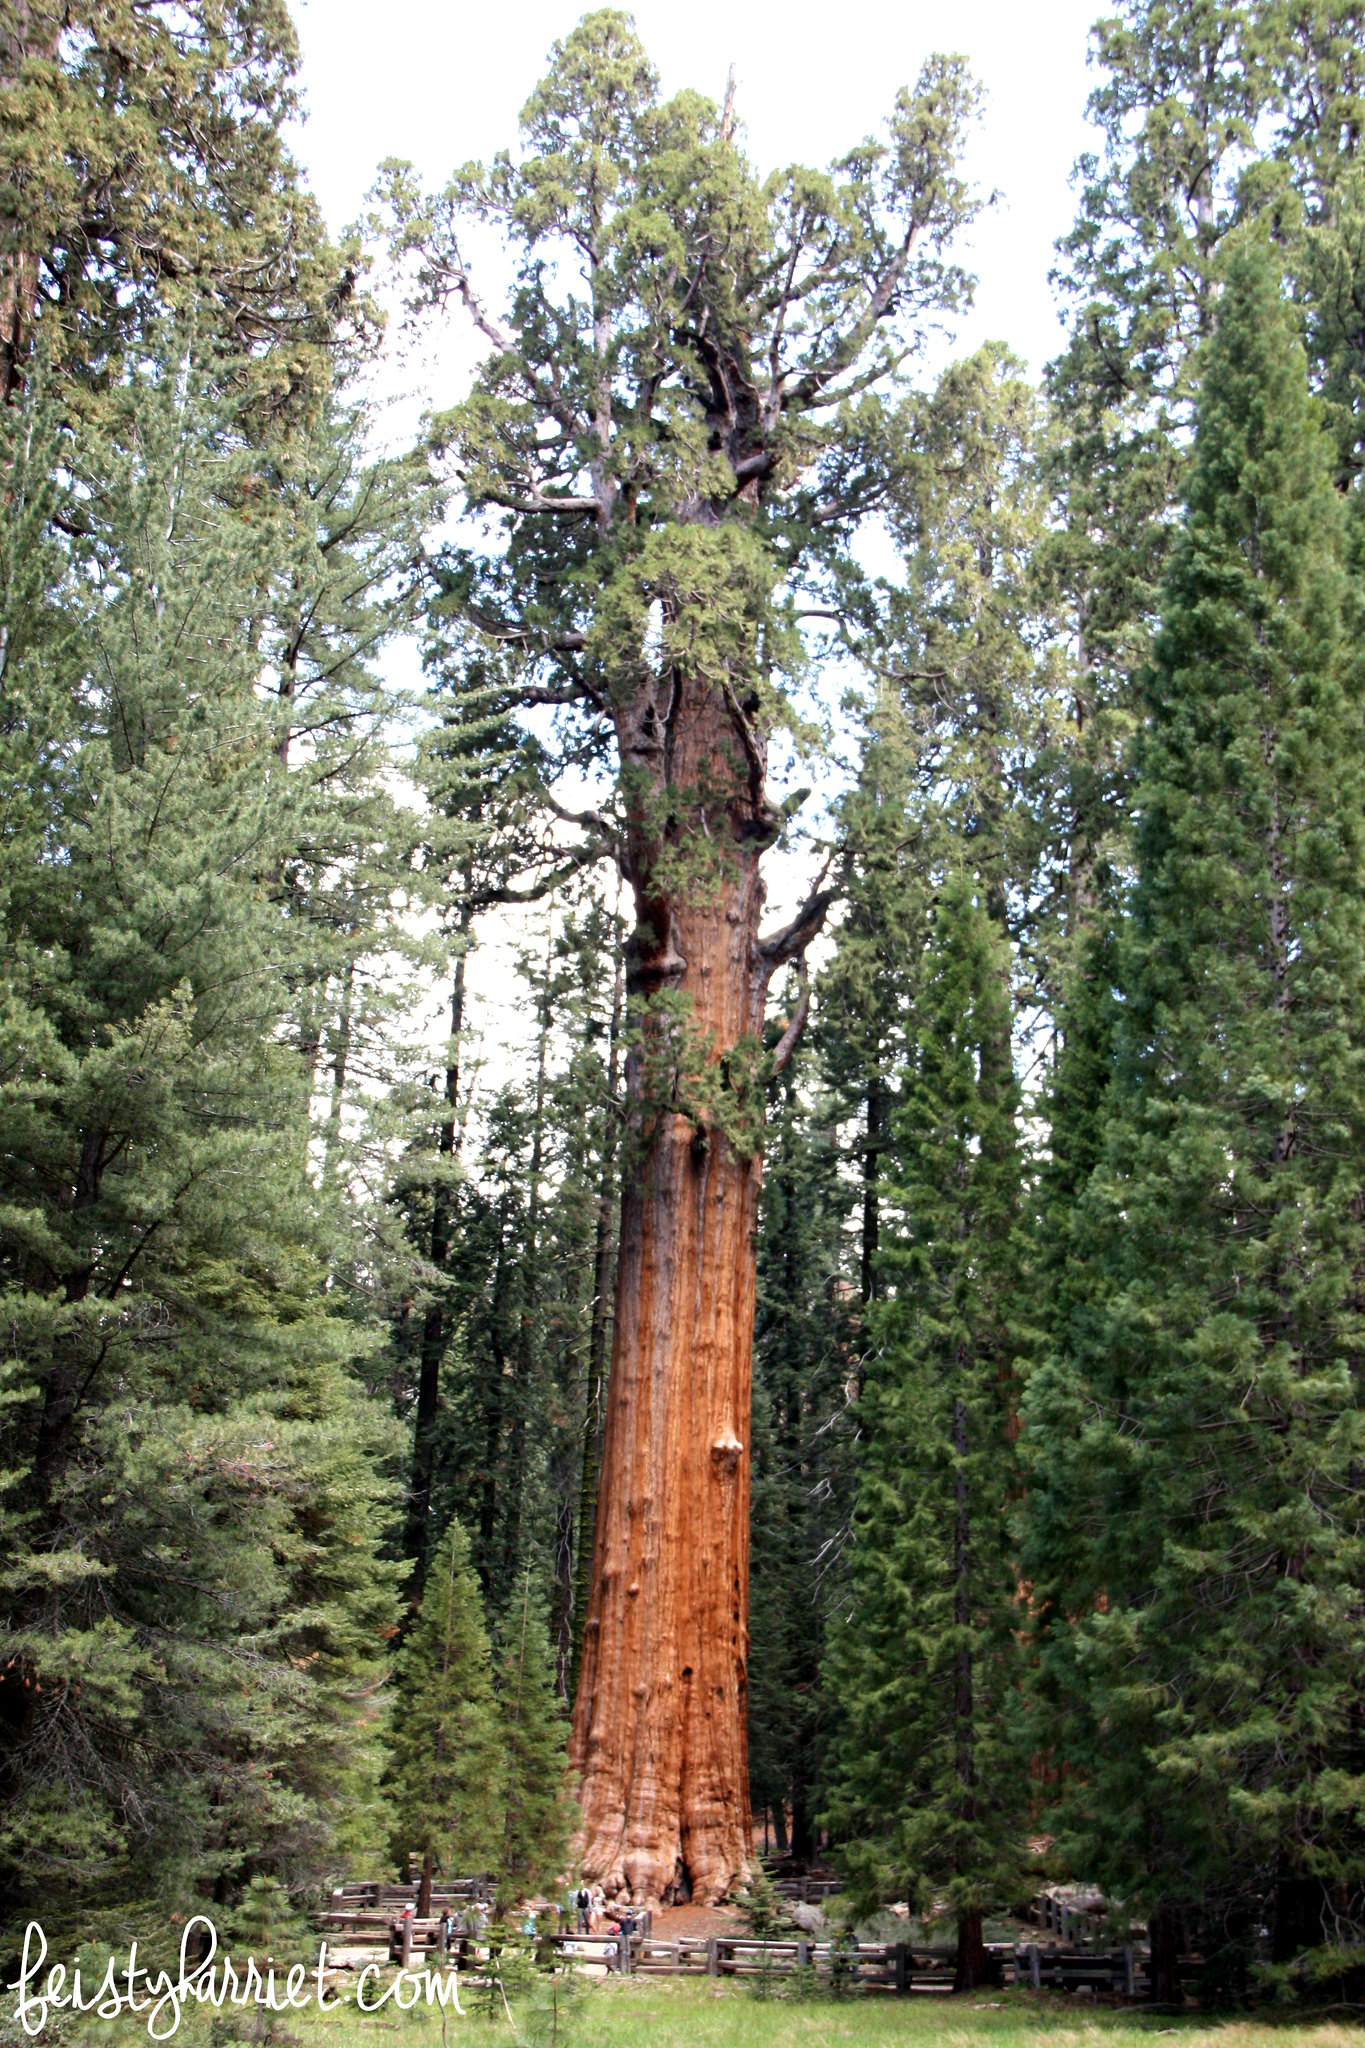 Sequoia National Park_feistyharriet_May 2016 (9)